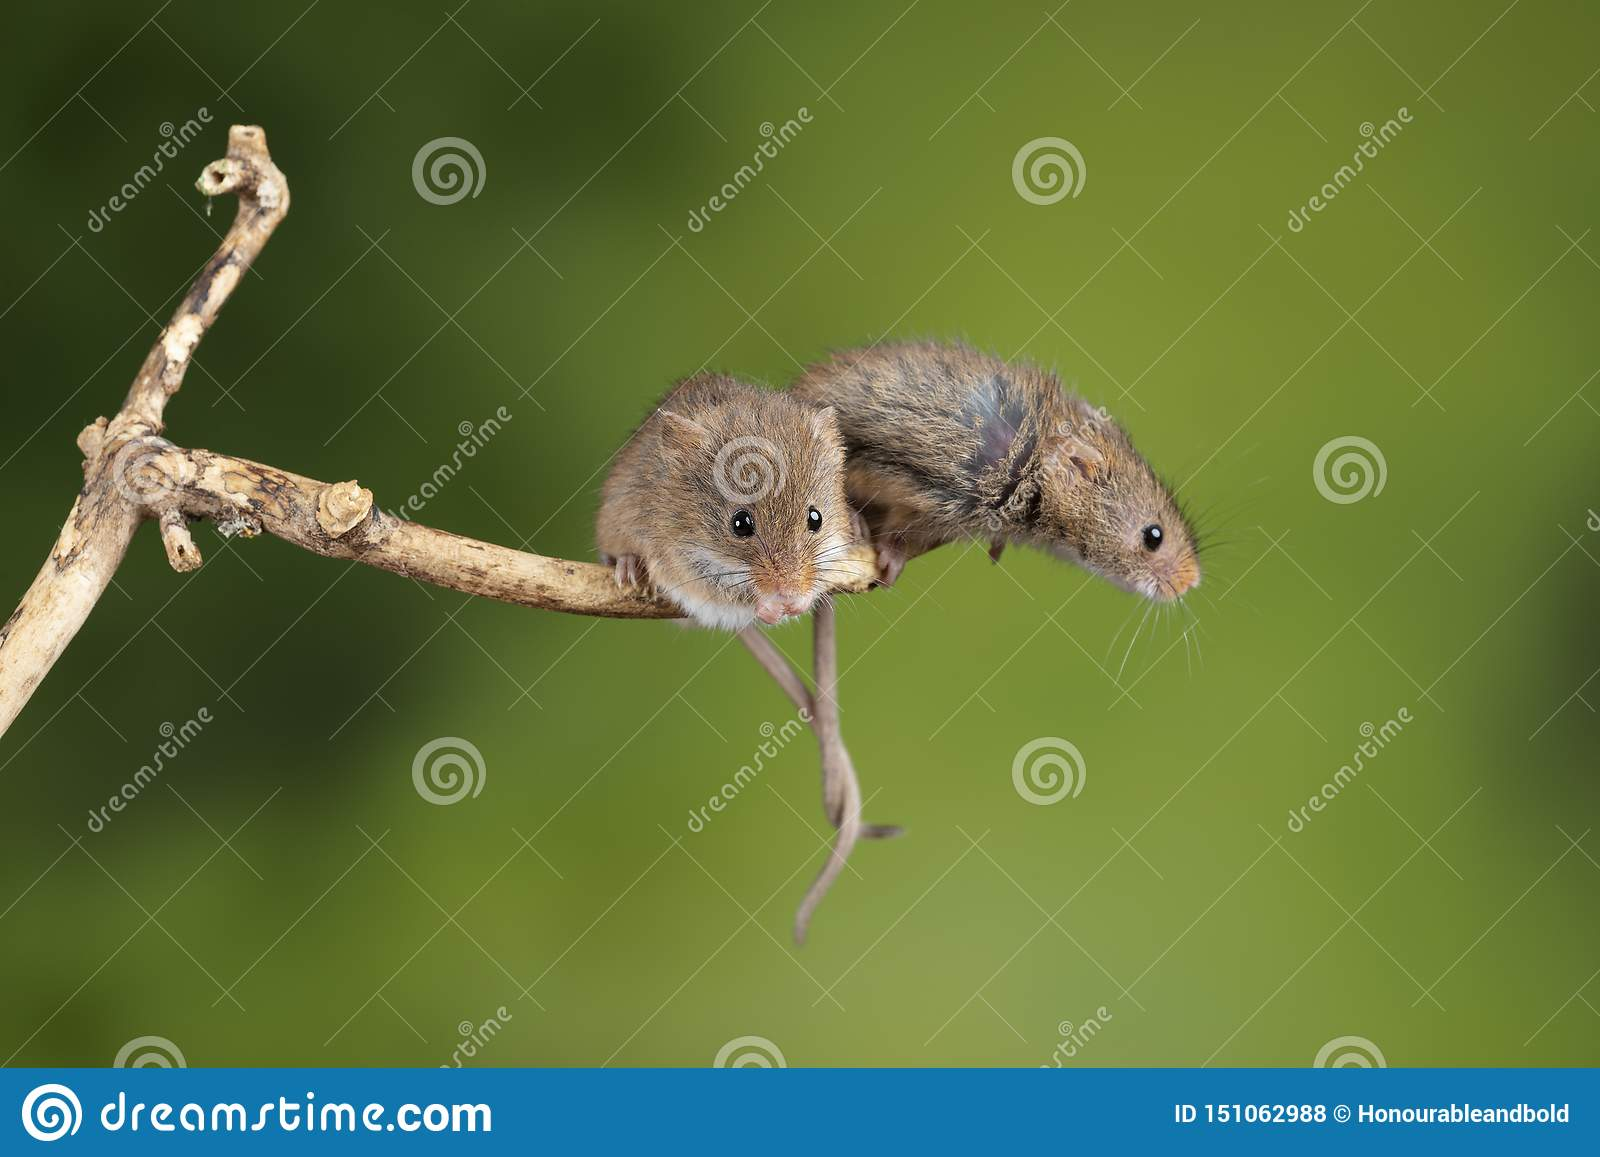 ADorable and Cute harvest mice micromys minutus on wooden stick with neutral green background in nature